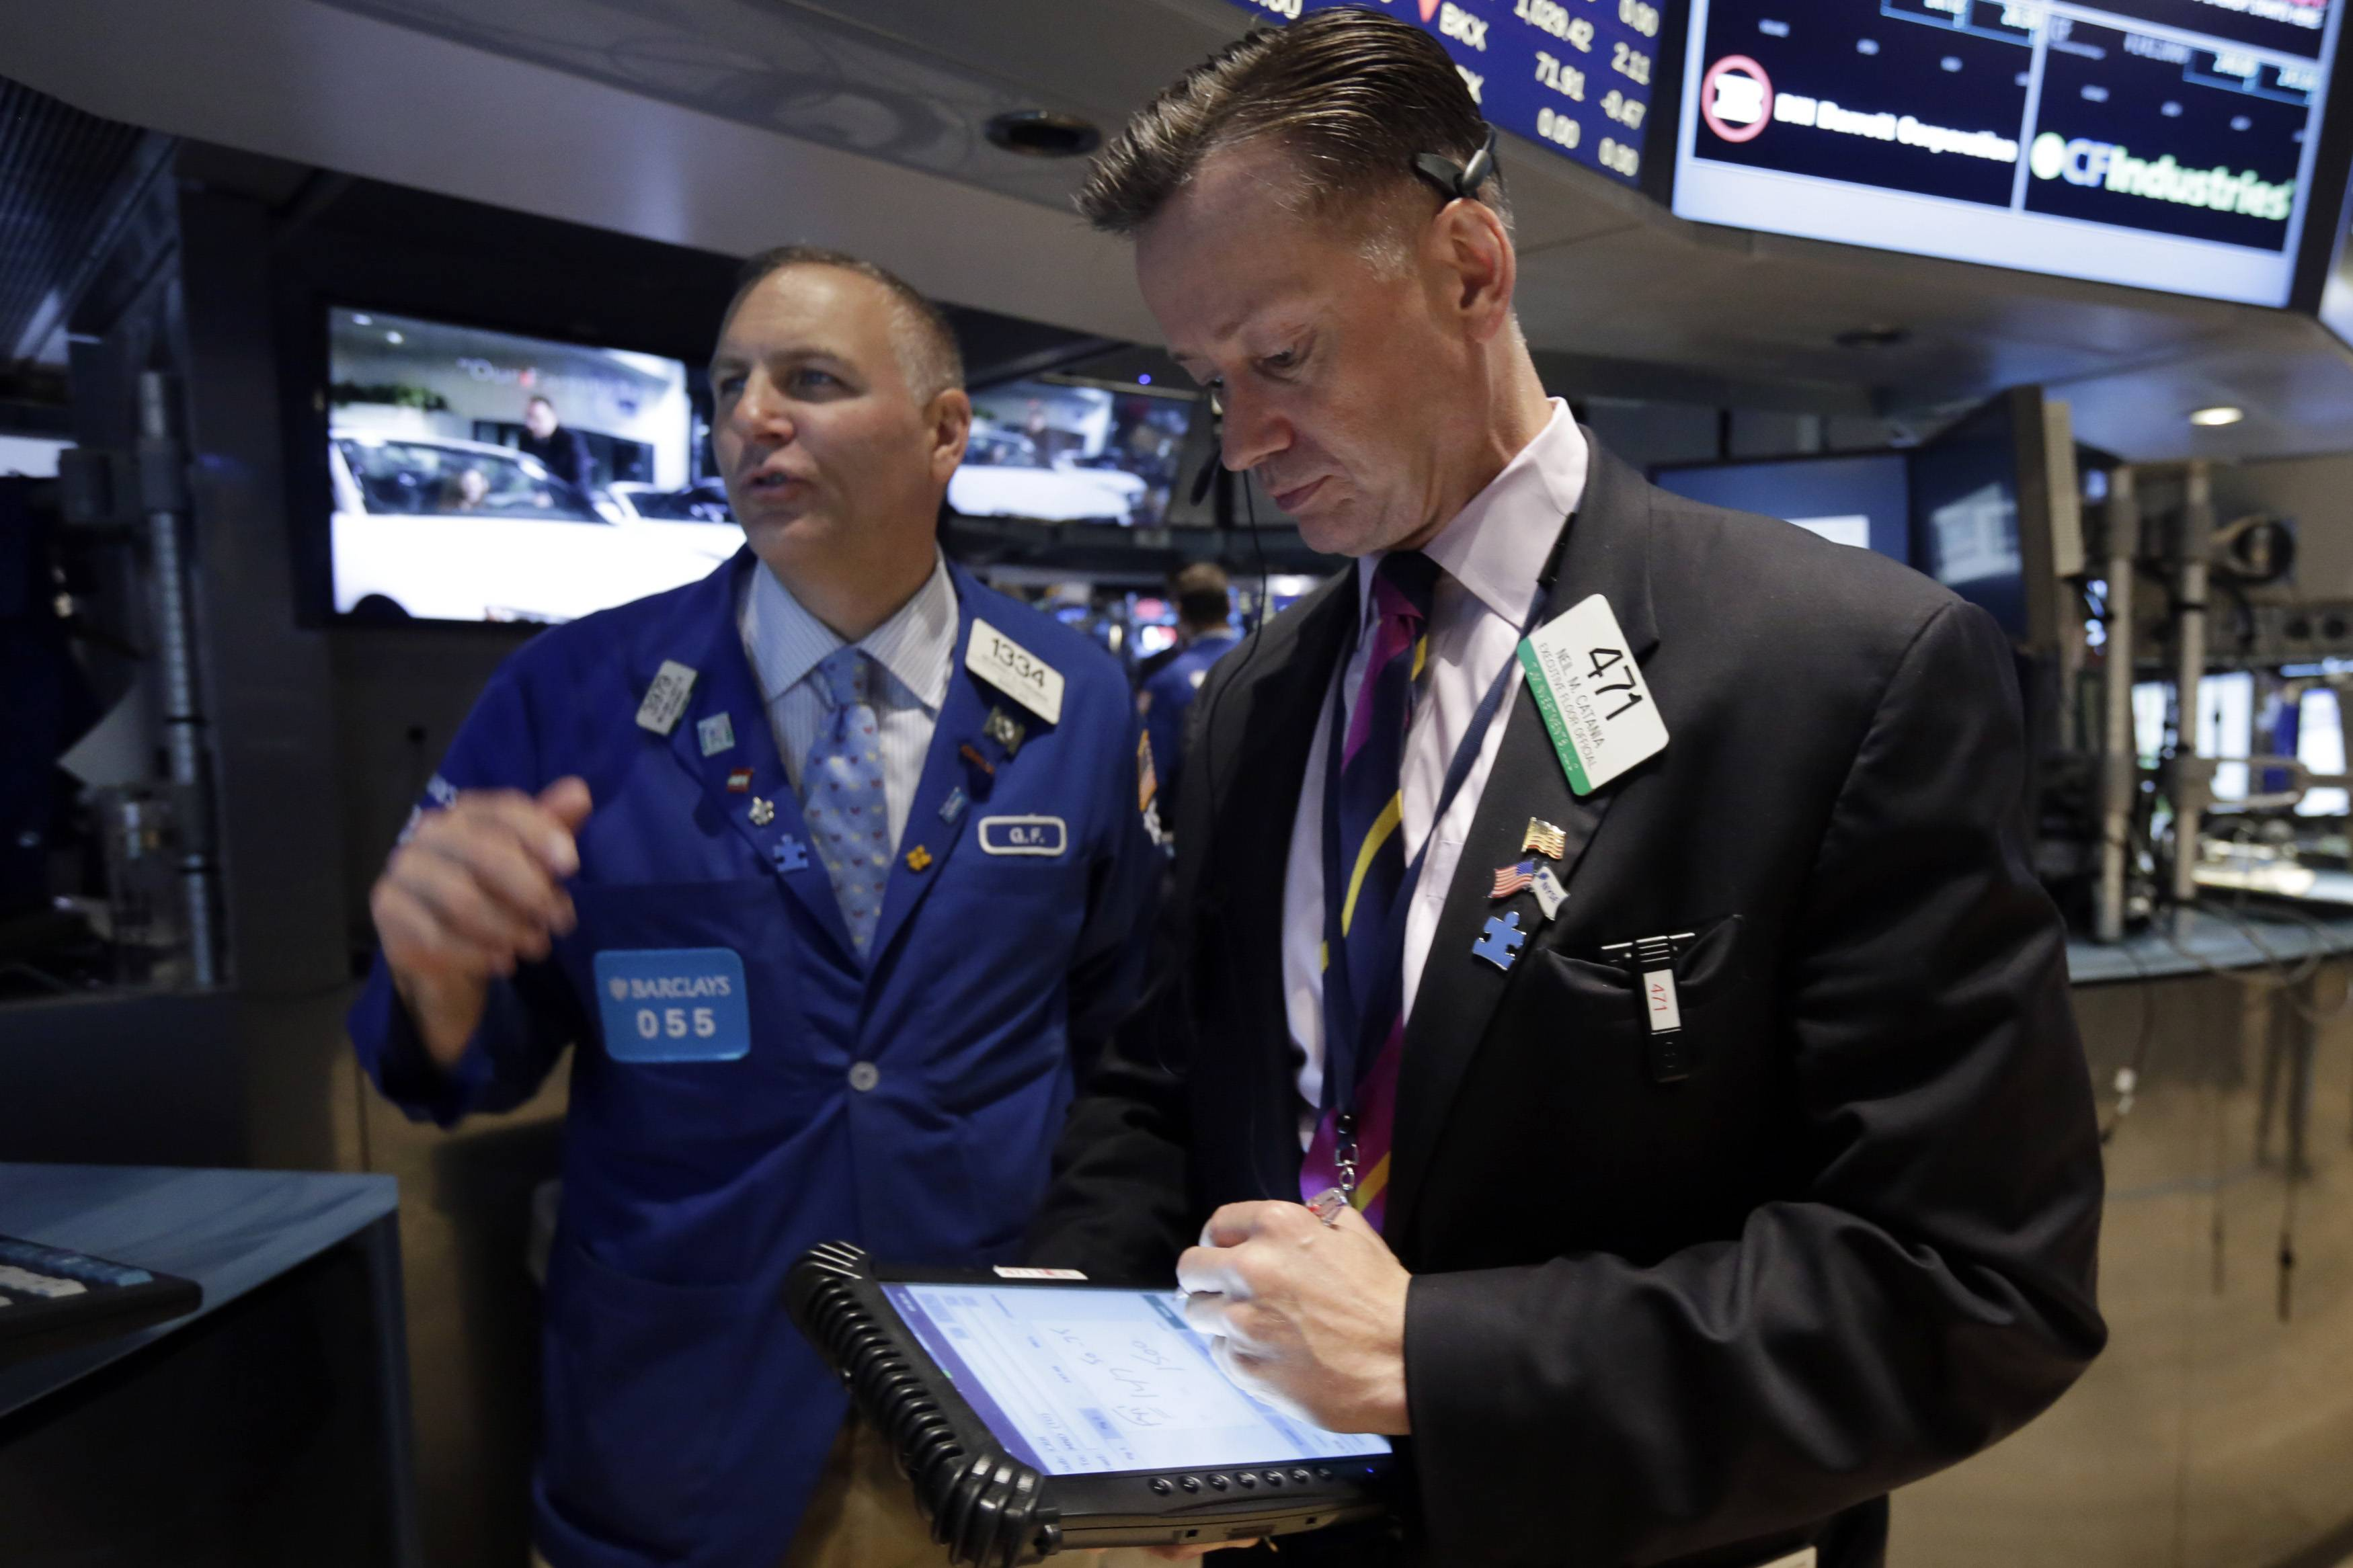 Investors sold stocks broadly for a second day on Tuesday as they wait for corporate earnings reports to see whether a recent run-up in prices is justified. The Dow Jones industrial average closed below 17,000, a key level it topped last week for the first time in its 118-year history.